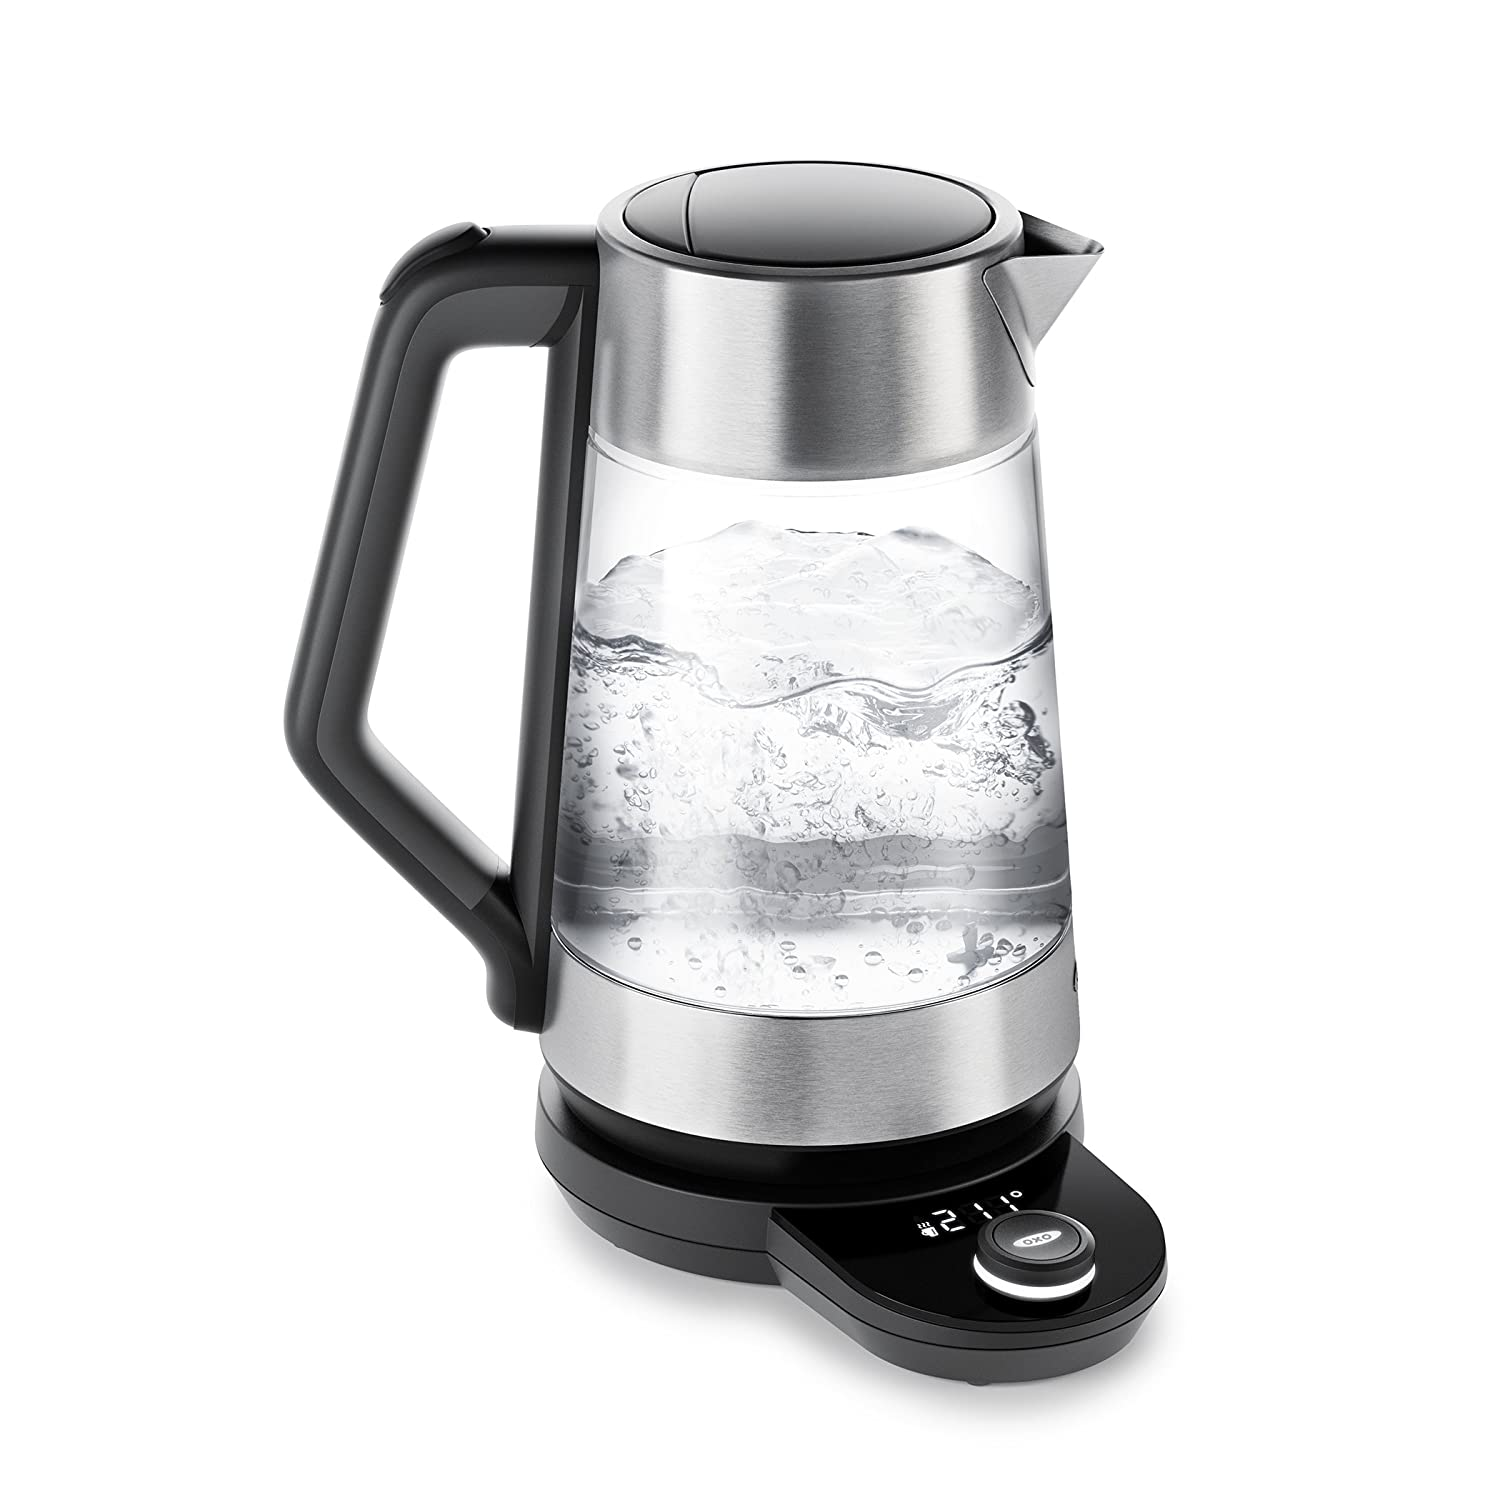 OXO On Cordless Glass Adjustable Temperature Electric Kettle, Stainless Steel 8716900